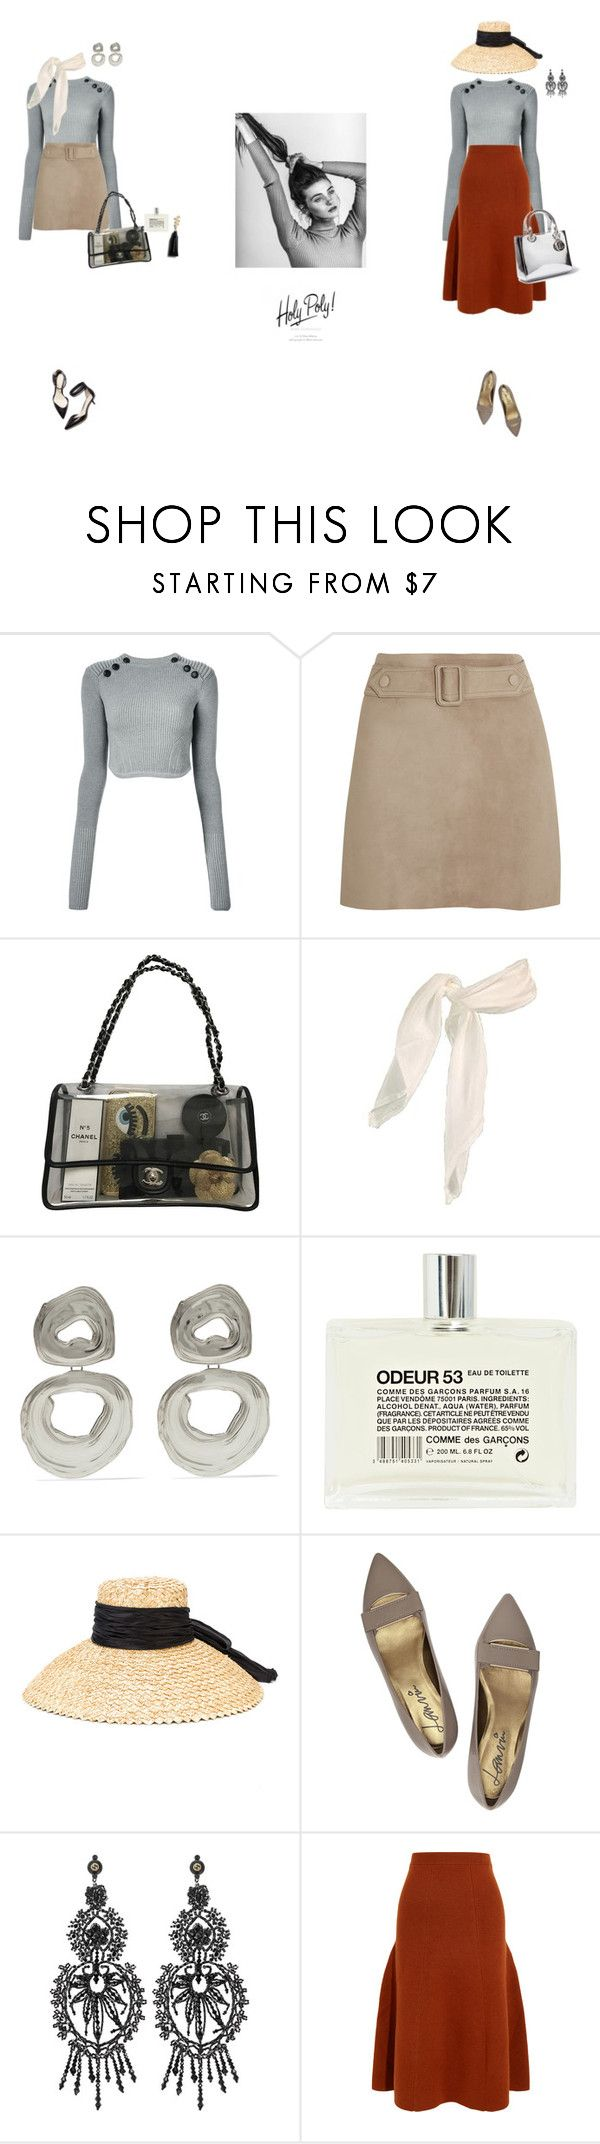 """""""Untitled #299"""" by palina-parker ❤ liked on Polyvore featuring Isabel Marant, Calvin Klein Collection, Chanel, Leigh Miller, 3.1 Phillip Lim, Comme des Garçons, Eugenia Kim, Lanvin, Gucci and Joseph"""